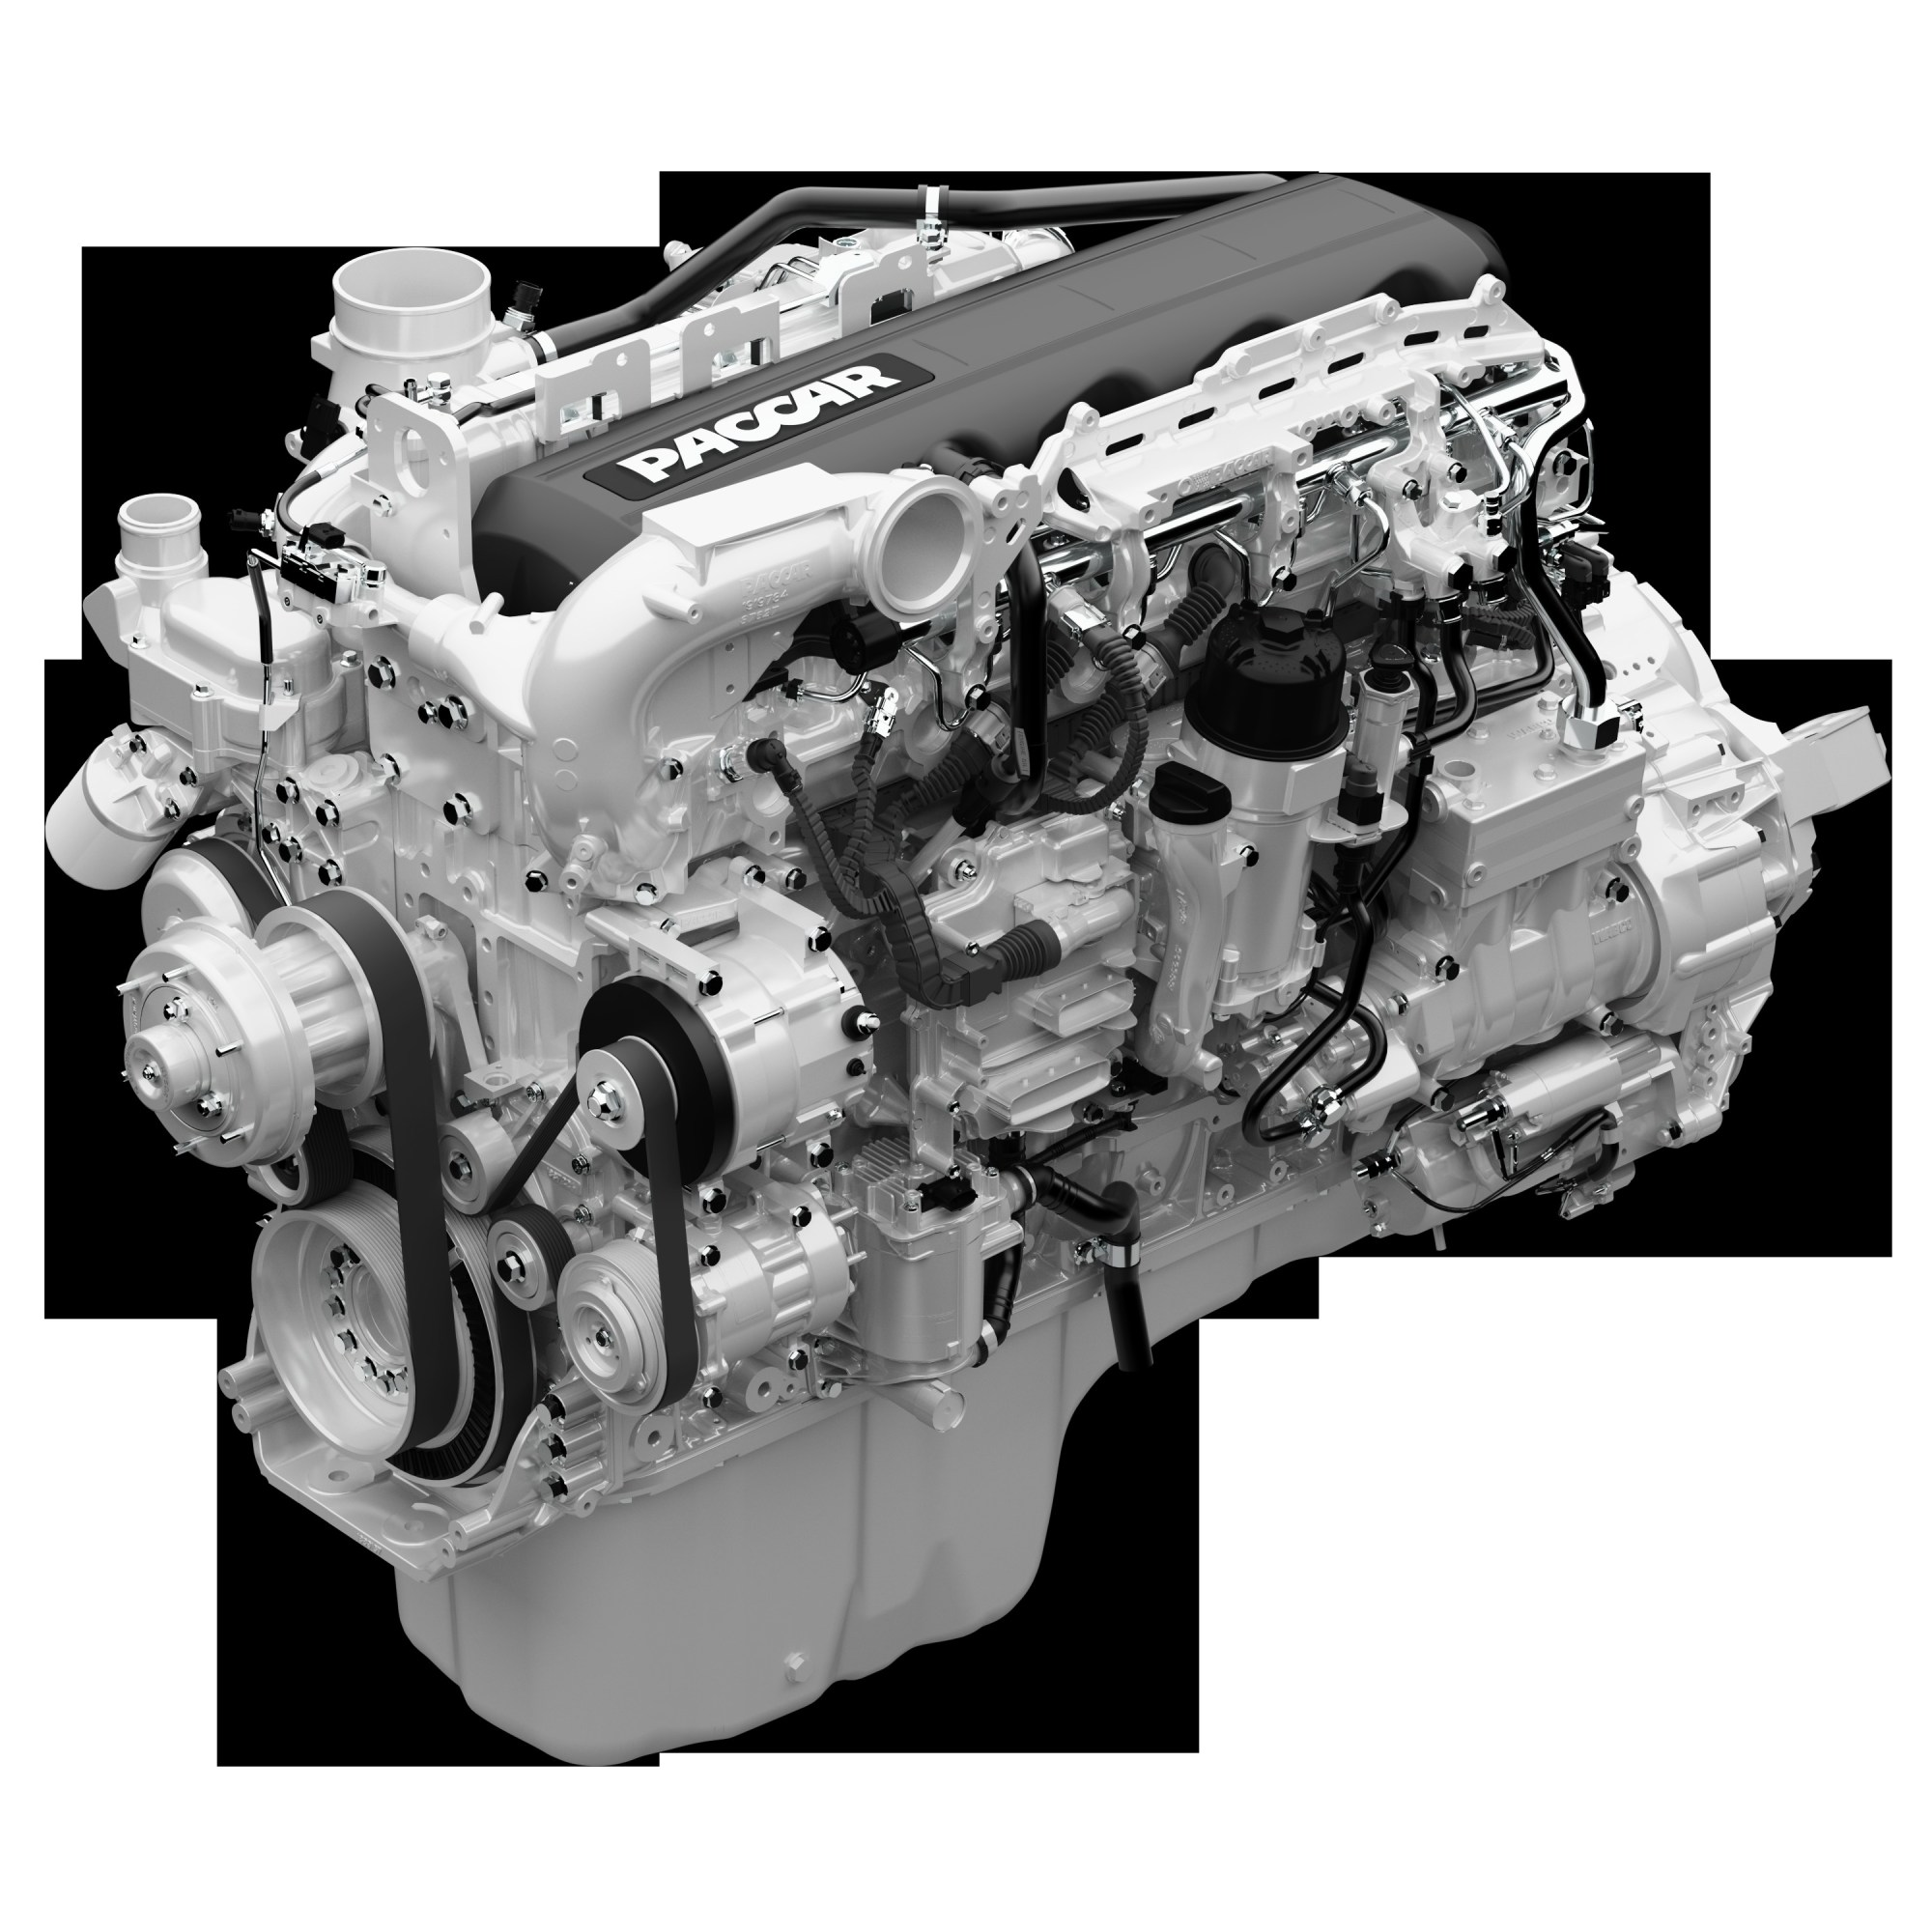 hight resolution of maxxforce 13 engine diagram paccar mx 13 engine